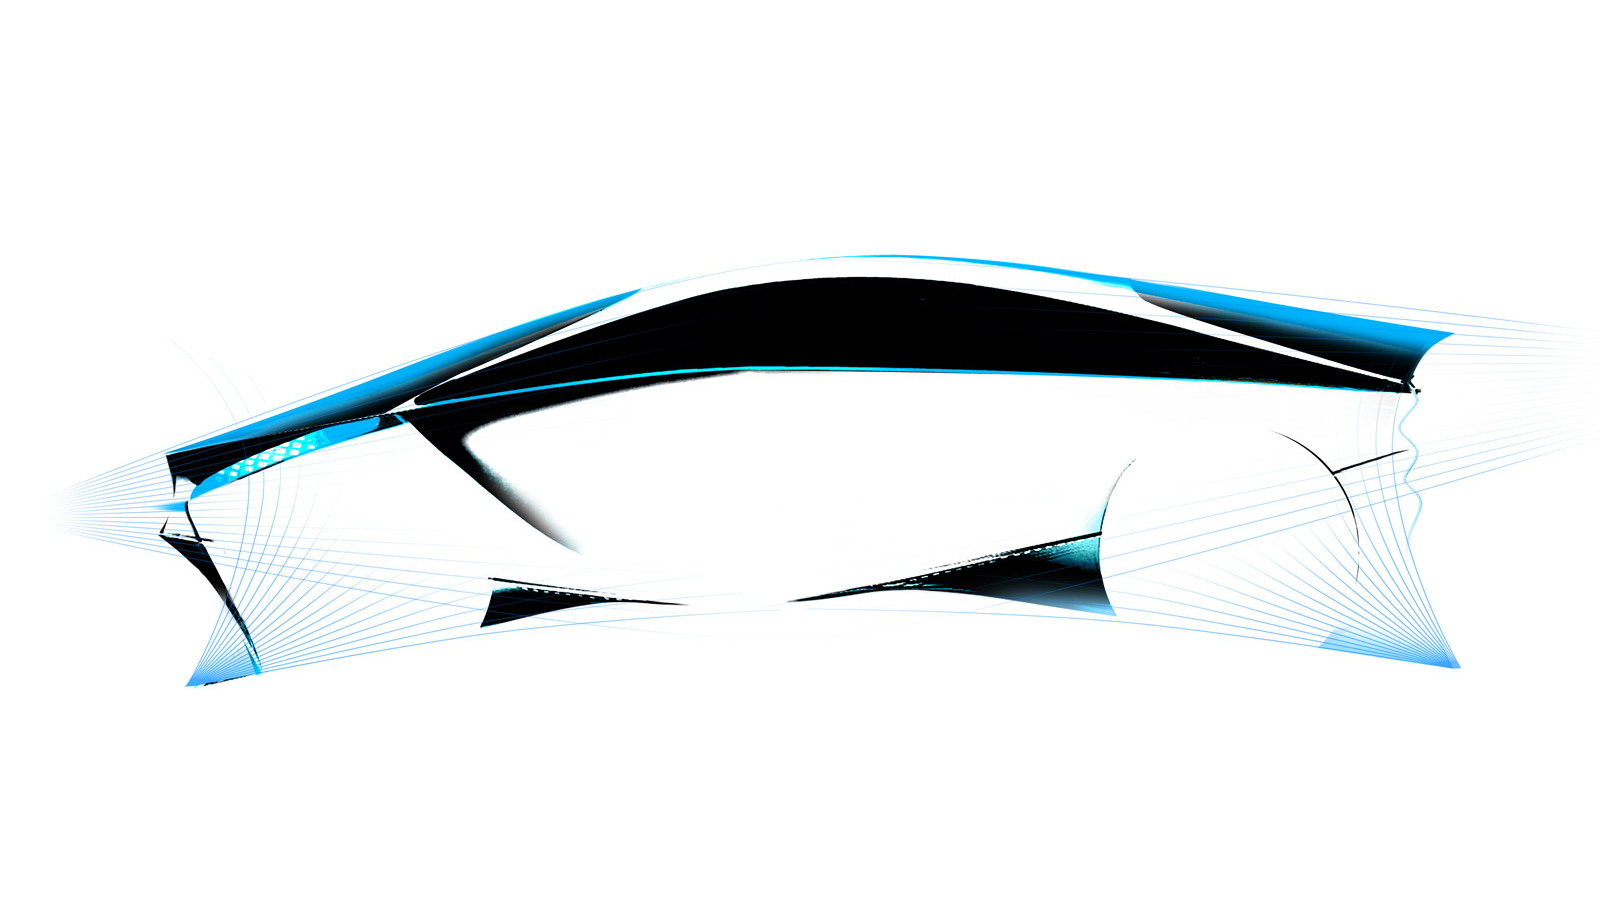 2012 Toyota FT-Bh Concept teaser